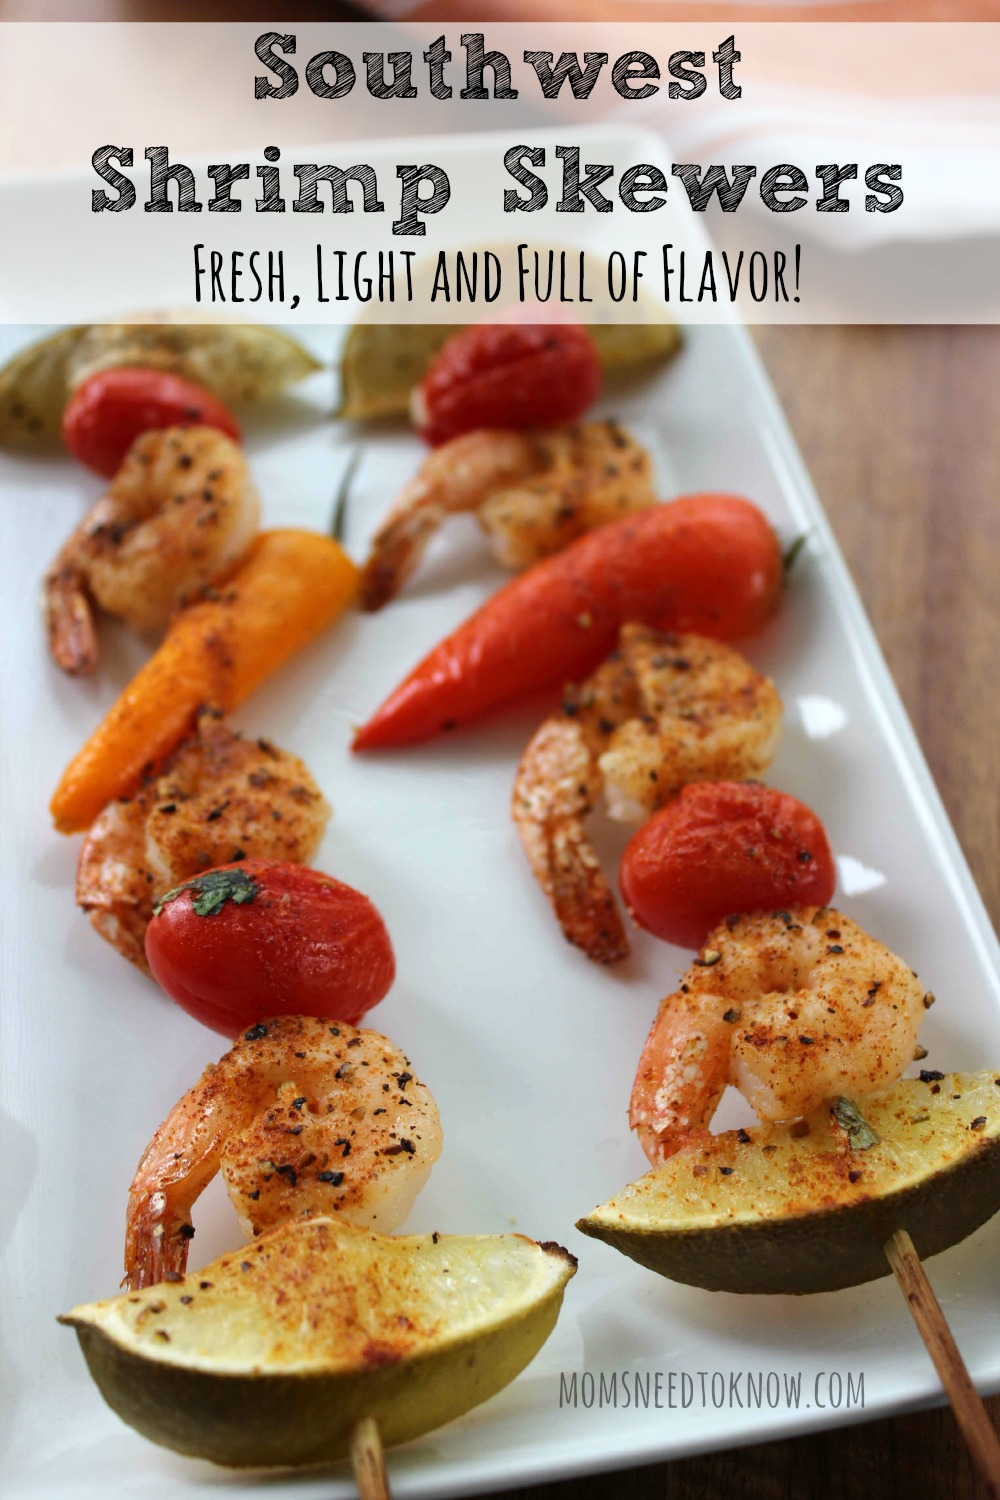 Southwest Shrimp Skewers